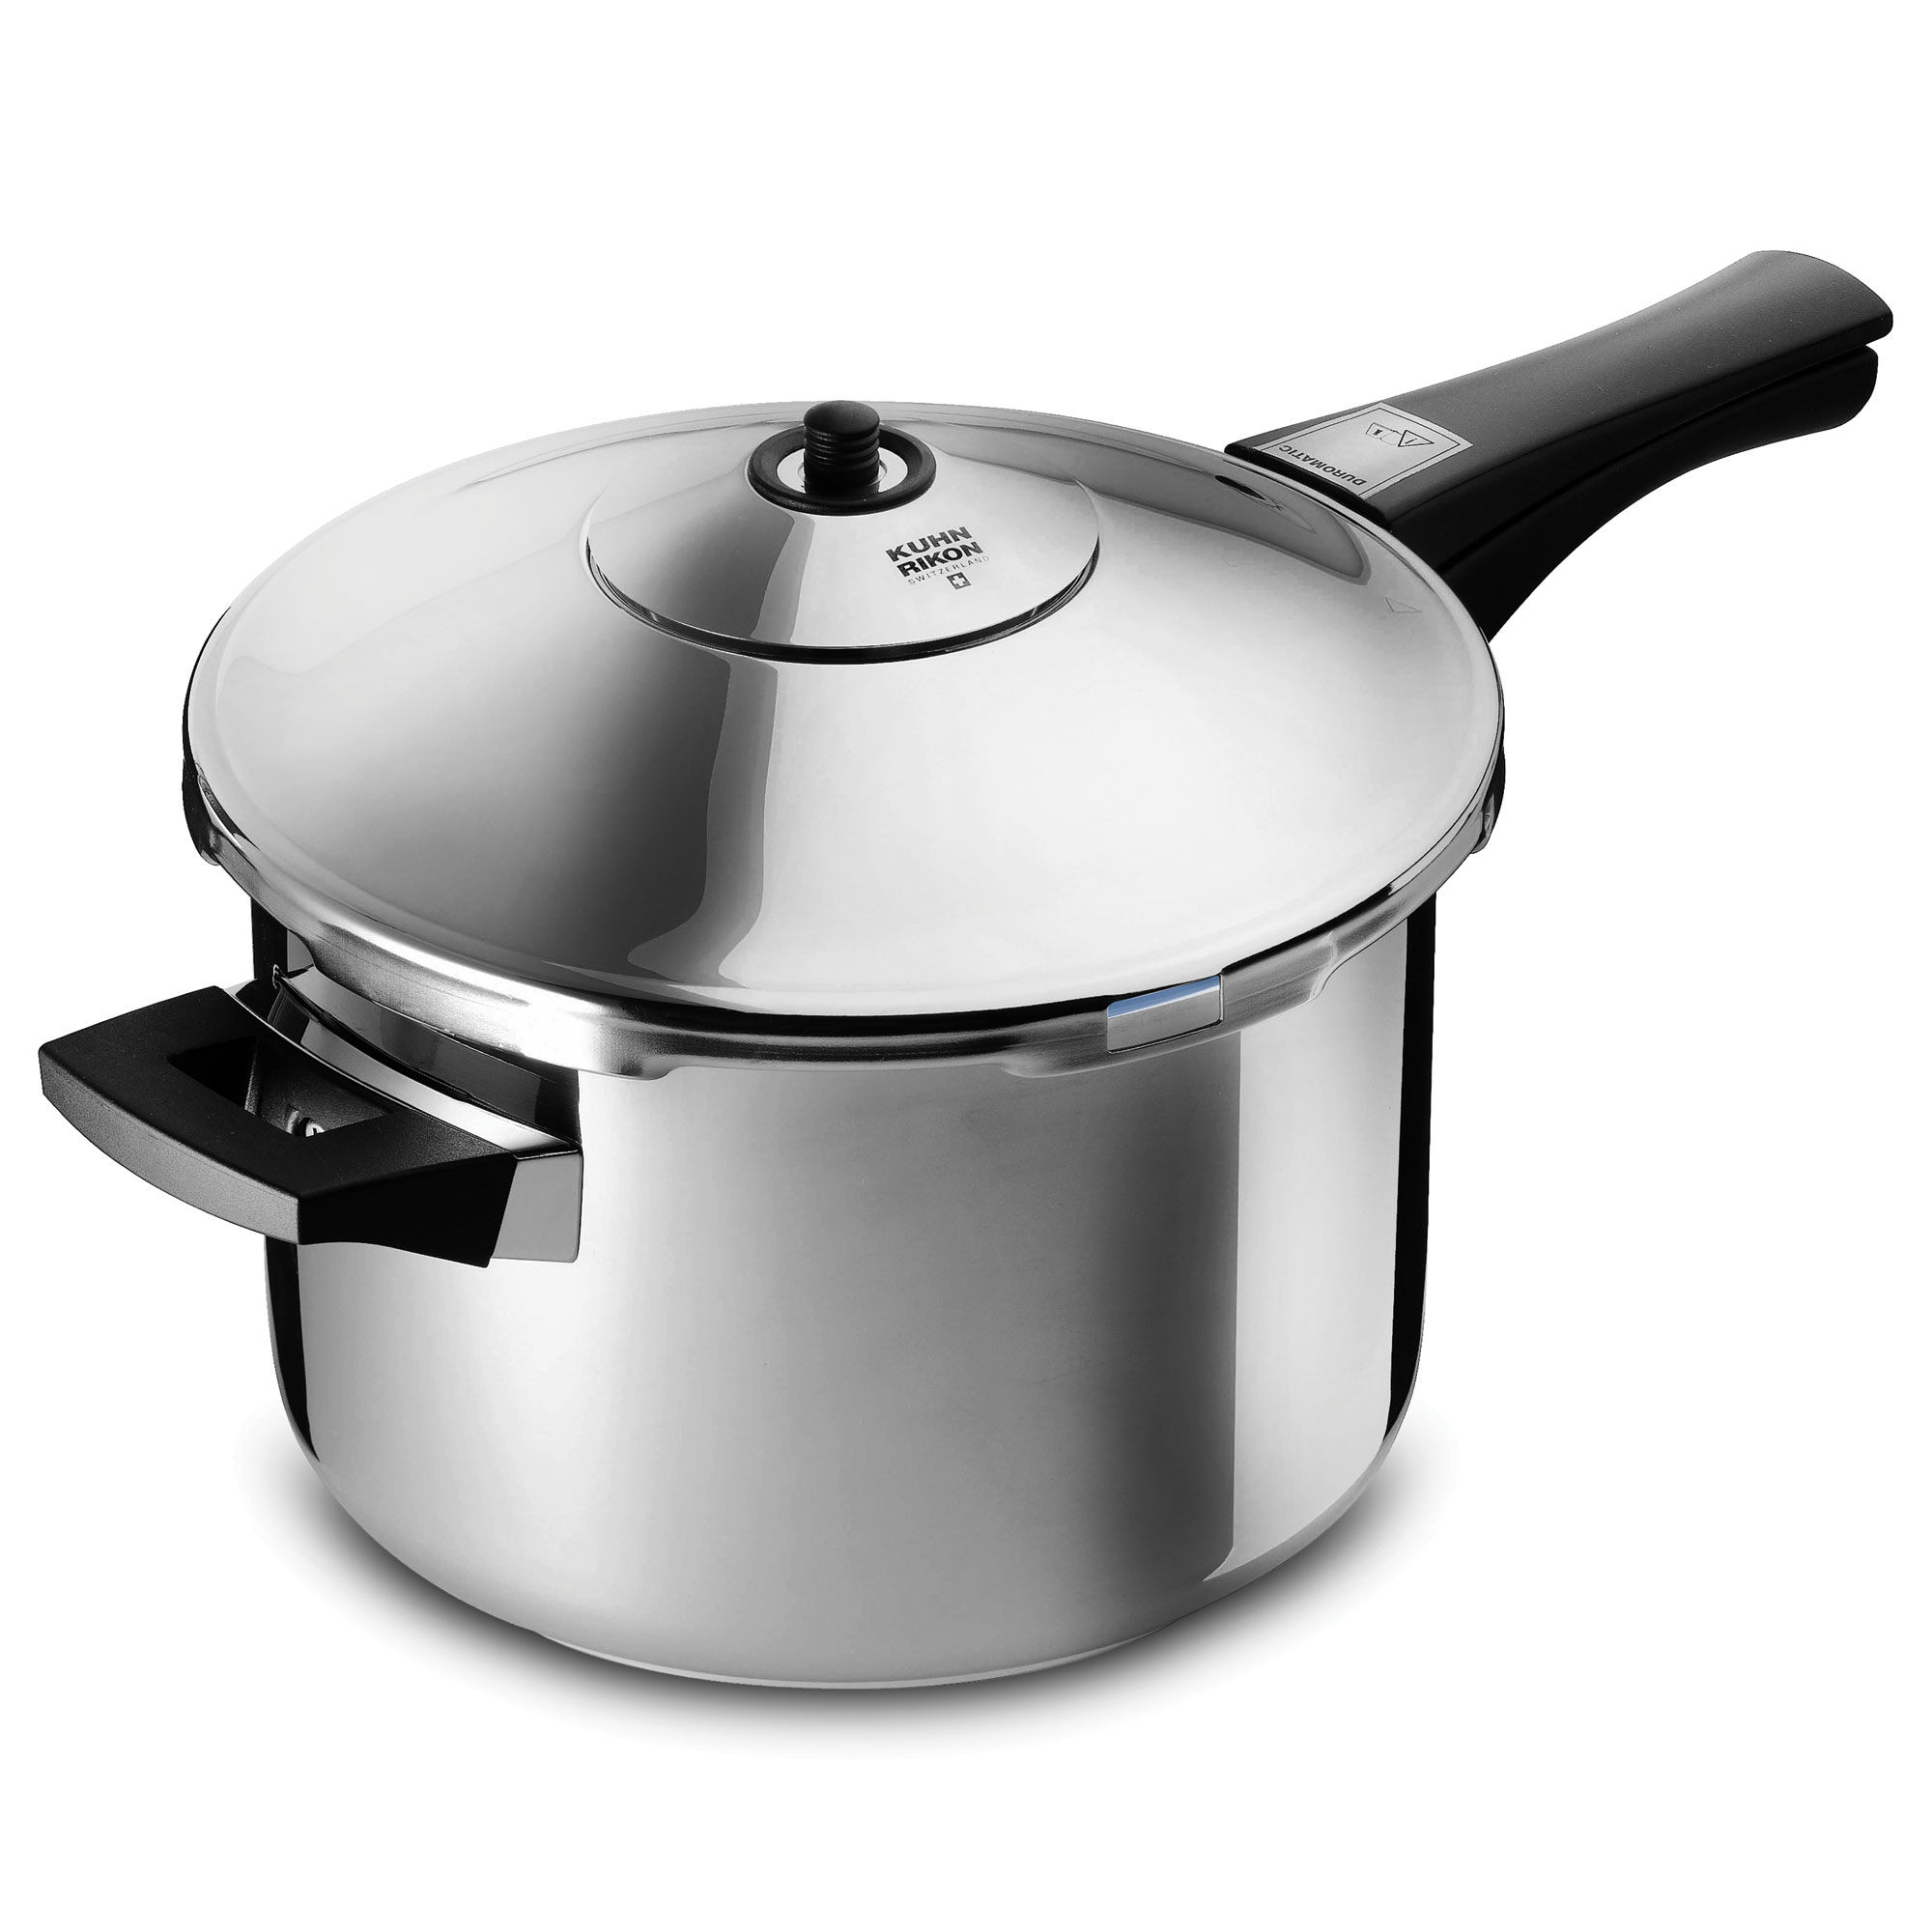 kuhn rikon duromatic stainless steel saucepan pressure cooker 5 quart cutlery and more. Black Bedroom Furniture Sets. Home Design Ideas